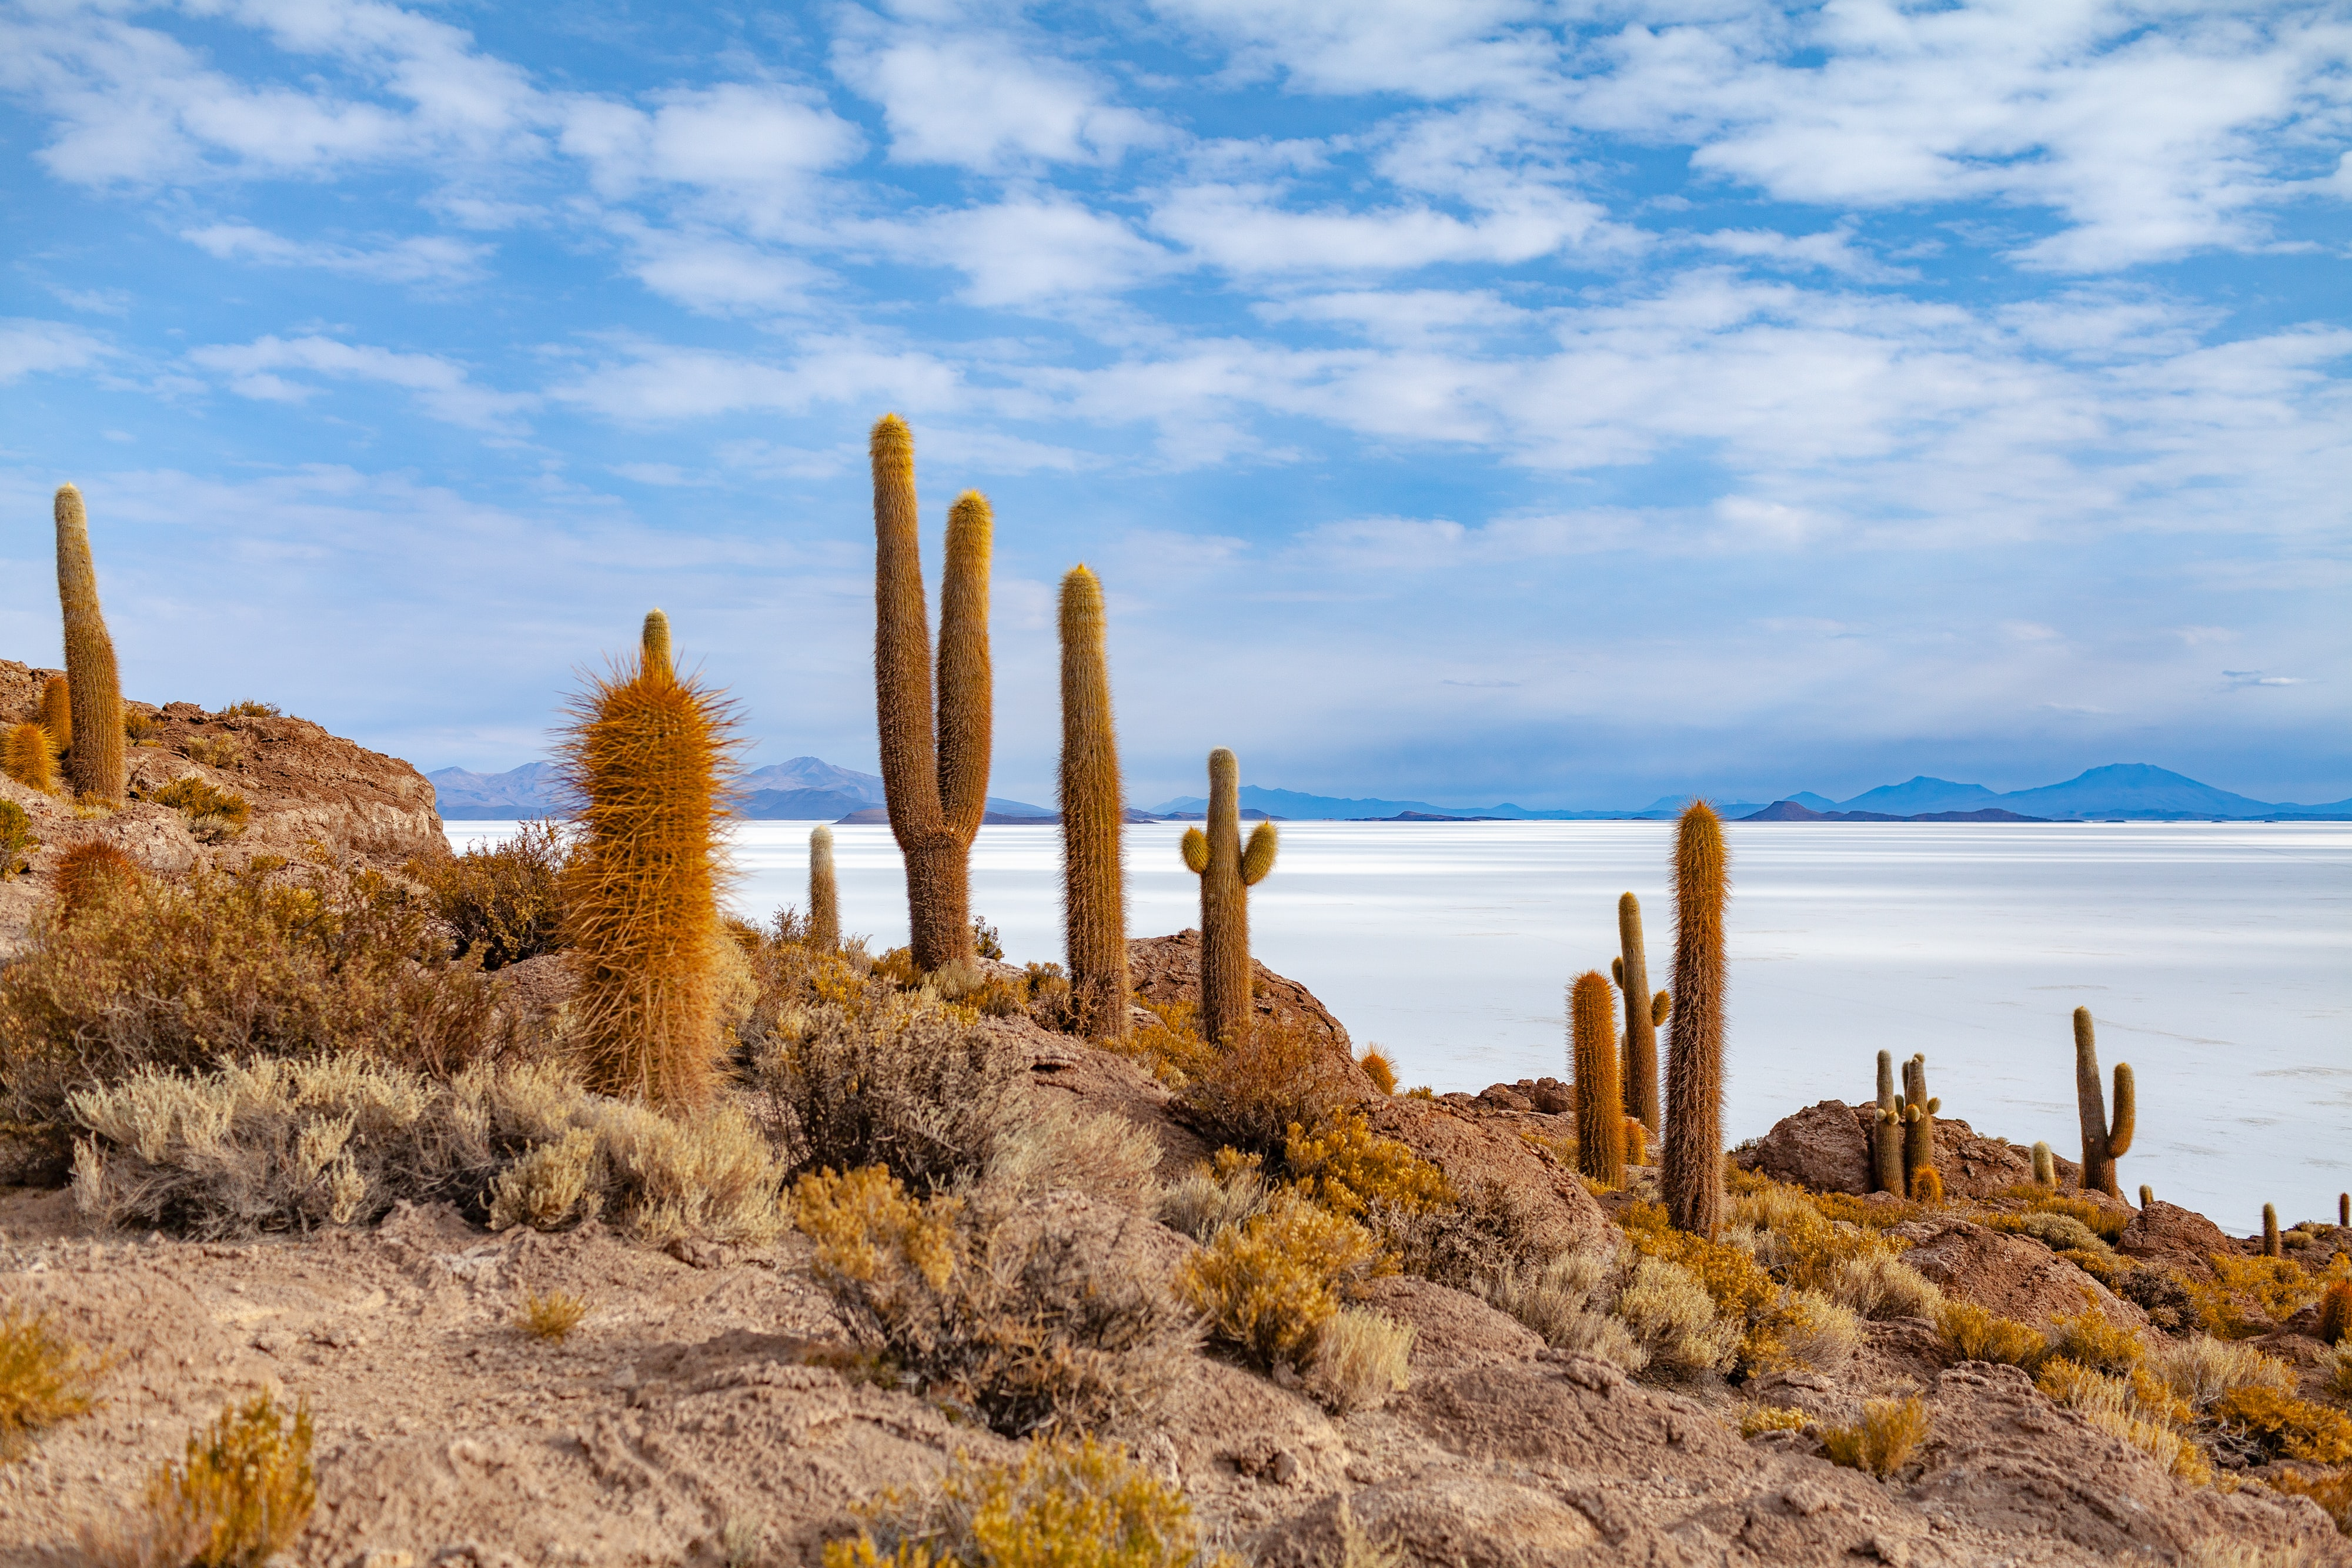 cactus plants near body of water